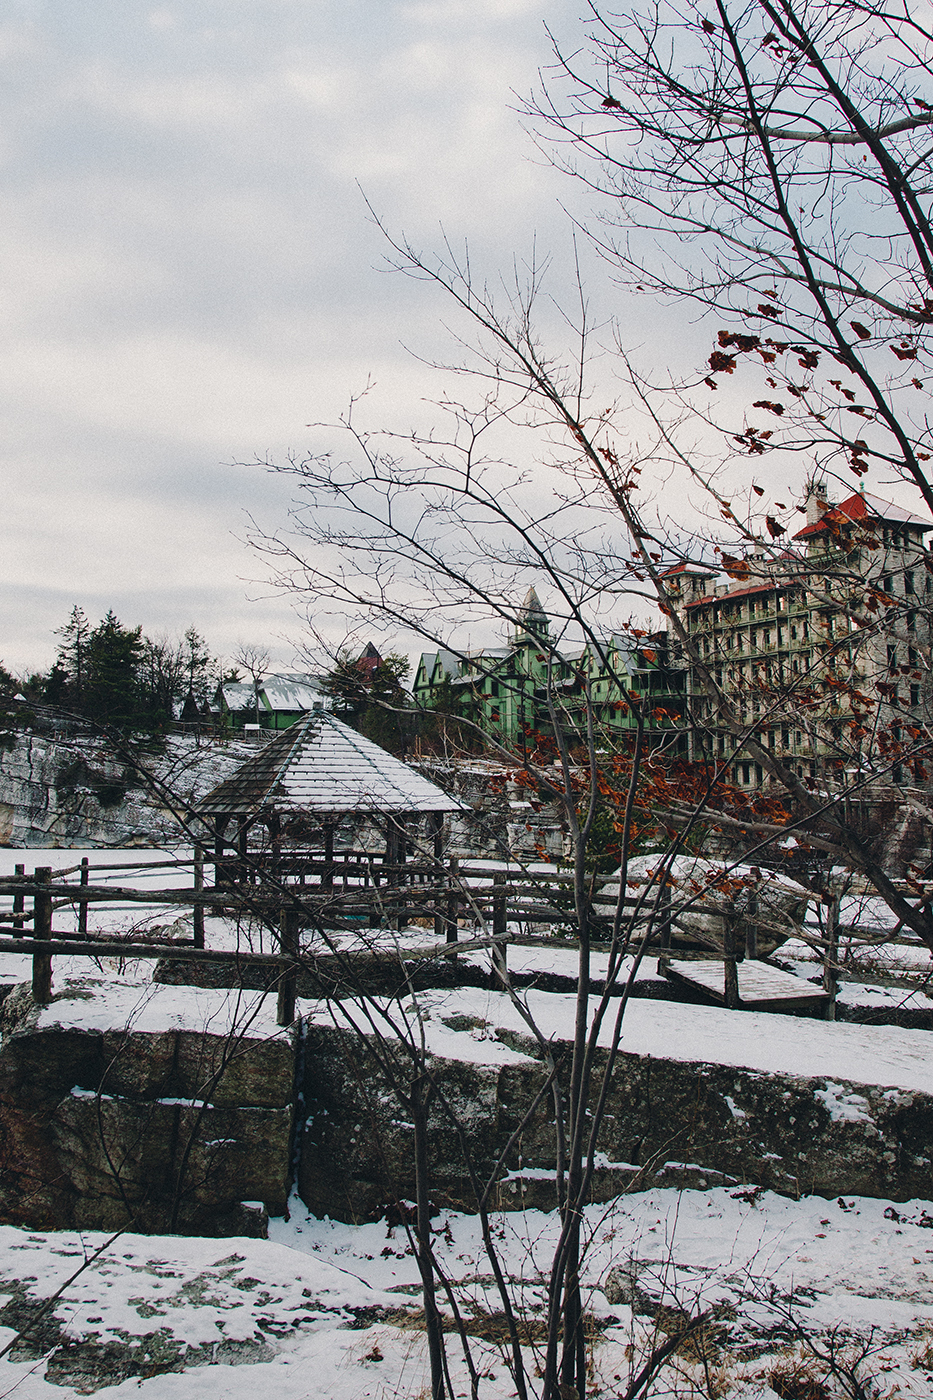 Photograph of the different view of The Mohonk Mountain House